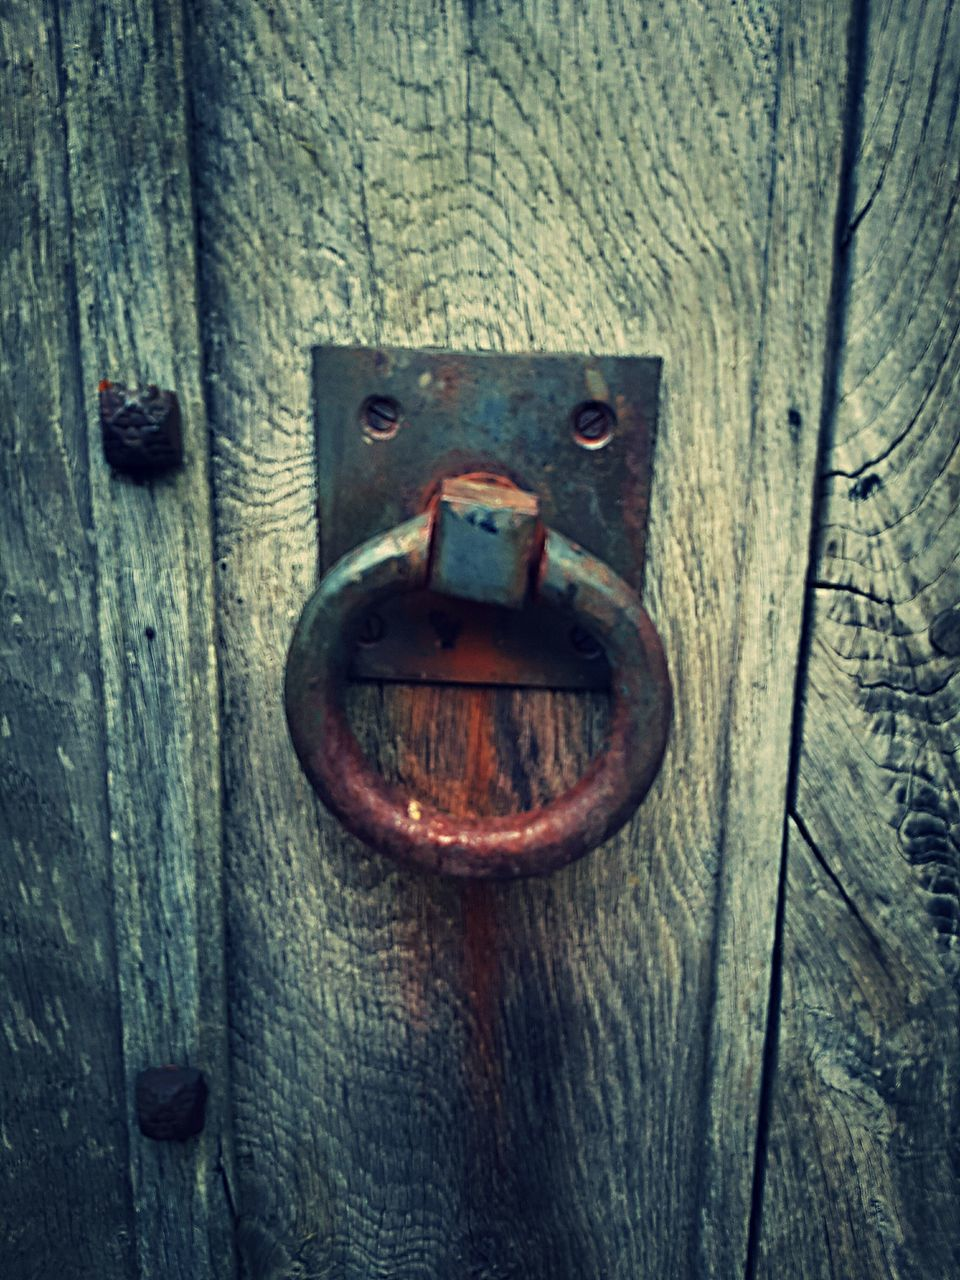 door, wood - material, close-up, metal, no people, outdoors, rusty, protection, weathered, day, textured, latch, backgrounds